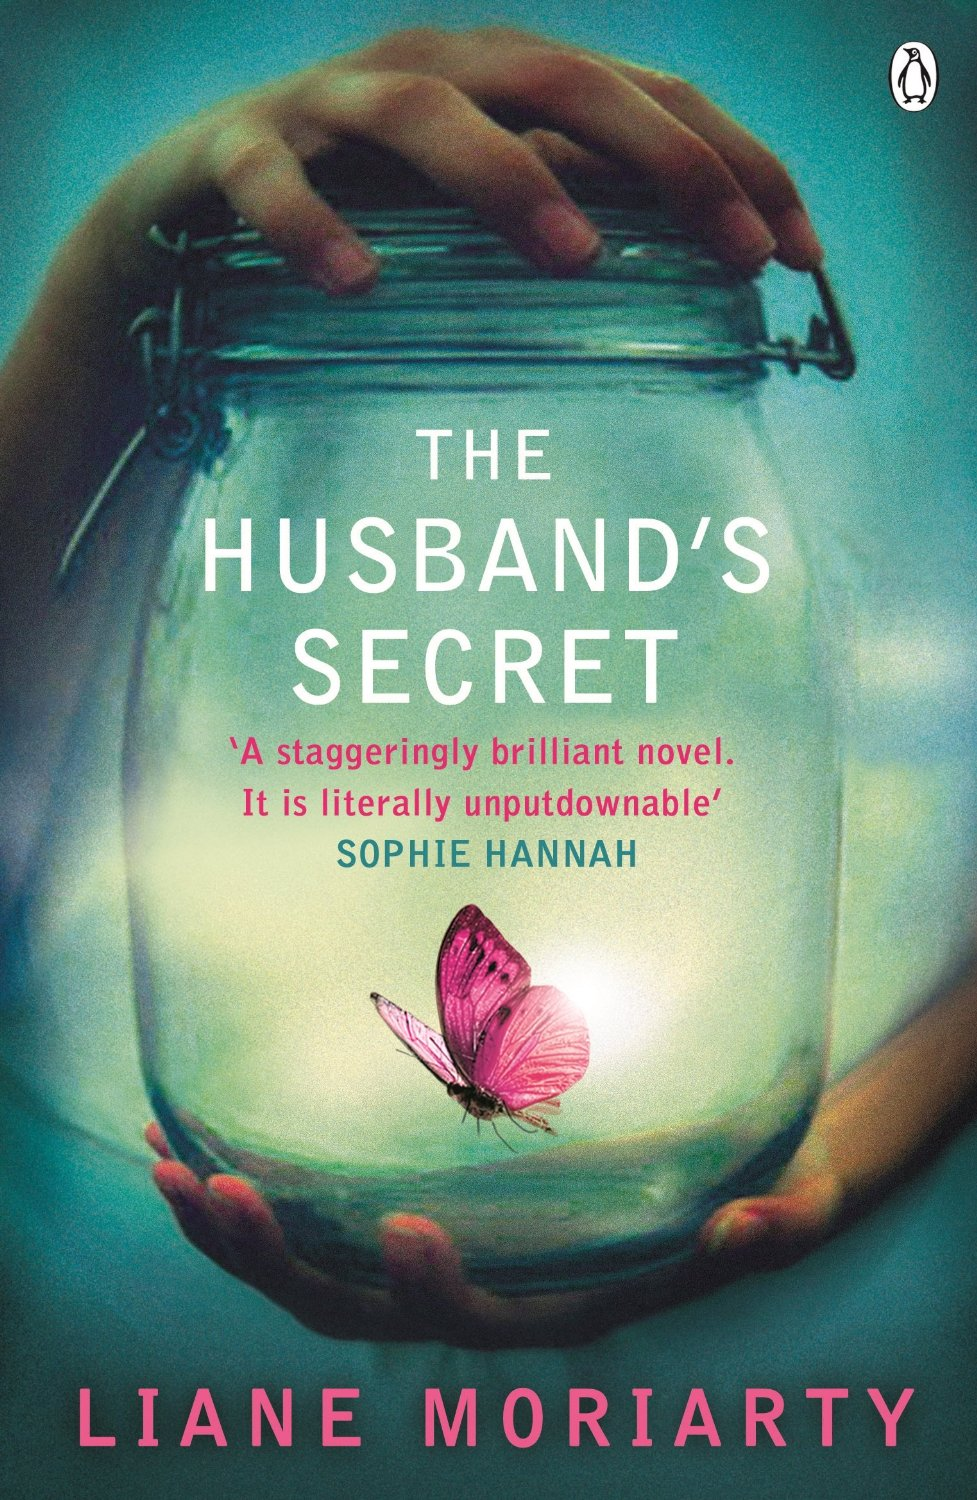 2 Dorks 1 Book: The Husband's Secret – Liane Moriarty